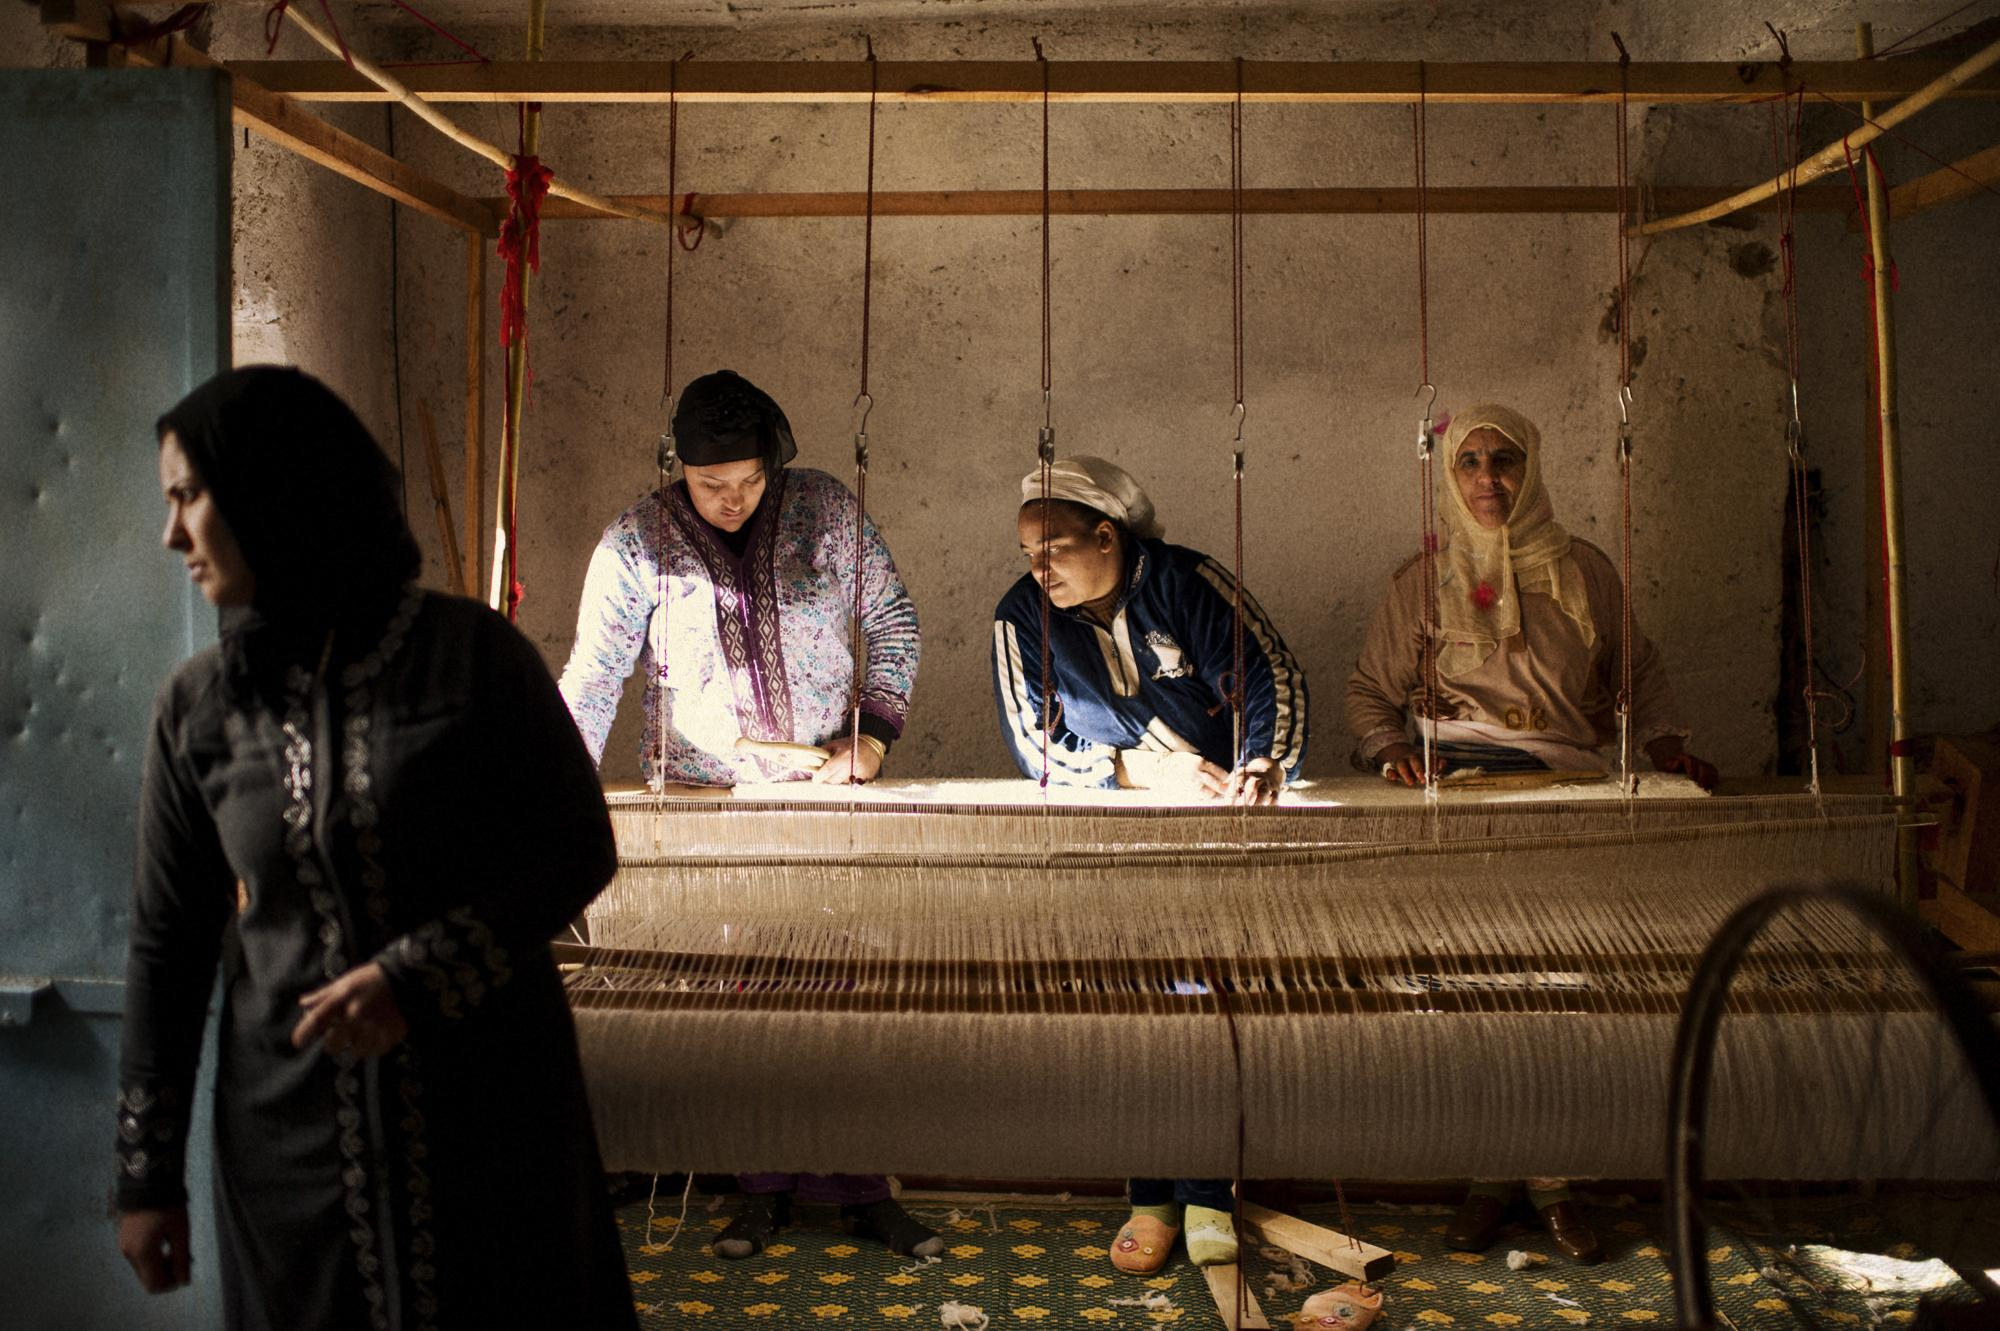 Morocco, Ain-Leuh. November 2011. Khadija Elabdi (second right) is Thirty seven years old, she started her first microcredit ten months ago. She makes fabrics and rugs, with her two friends Rachidi and Khadija.